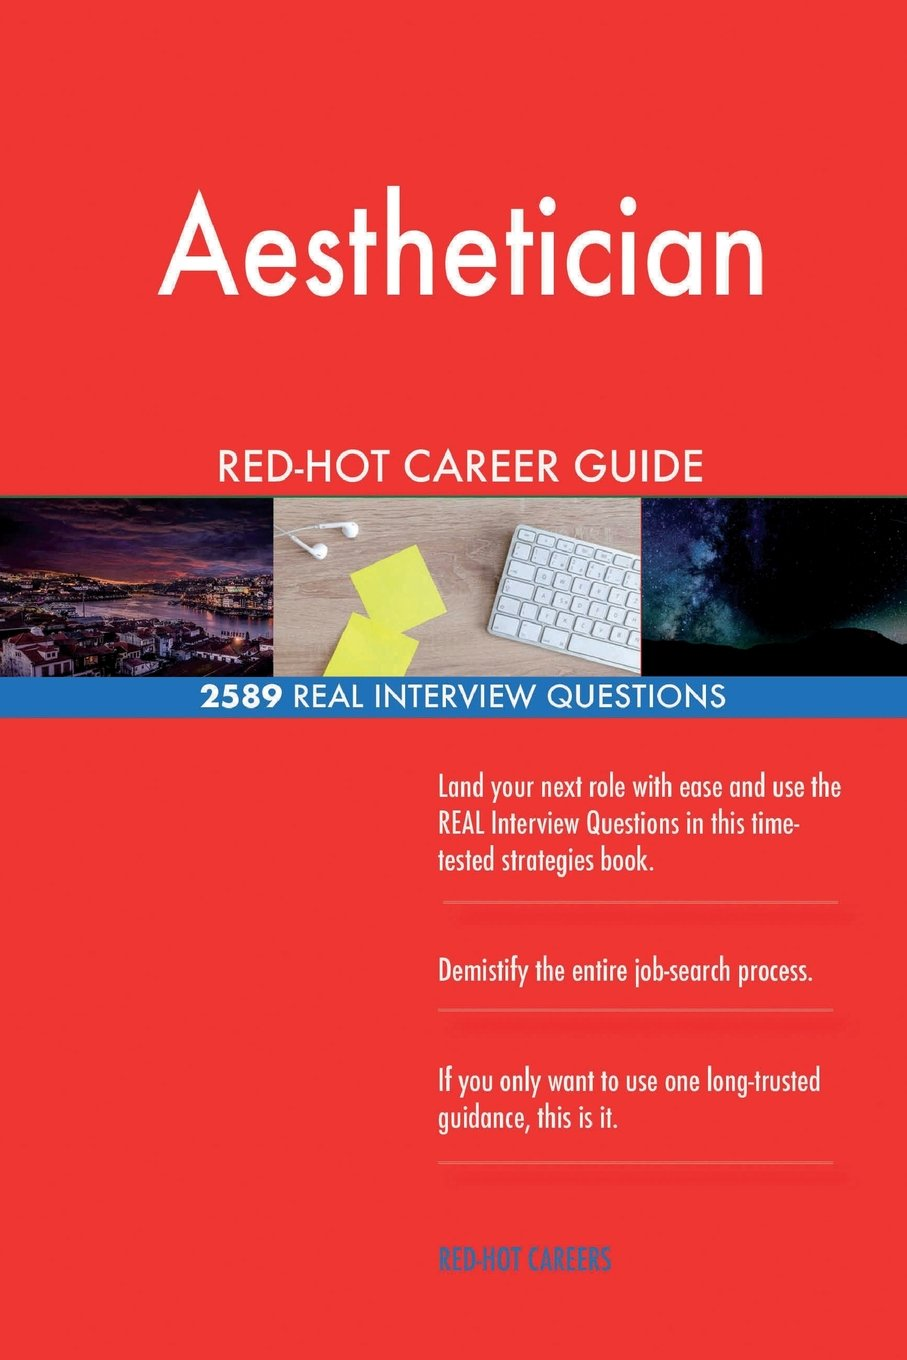 Download Aesthetician RED-HOT Career Guide; 2589 REAL Interview Questions ebook